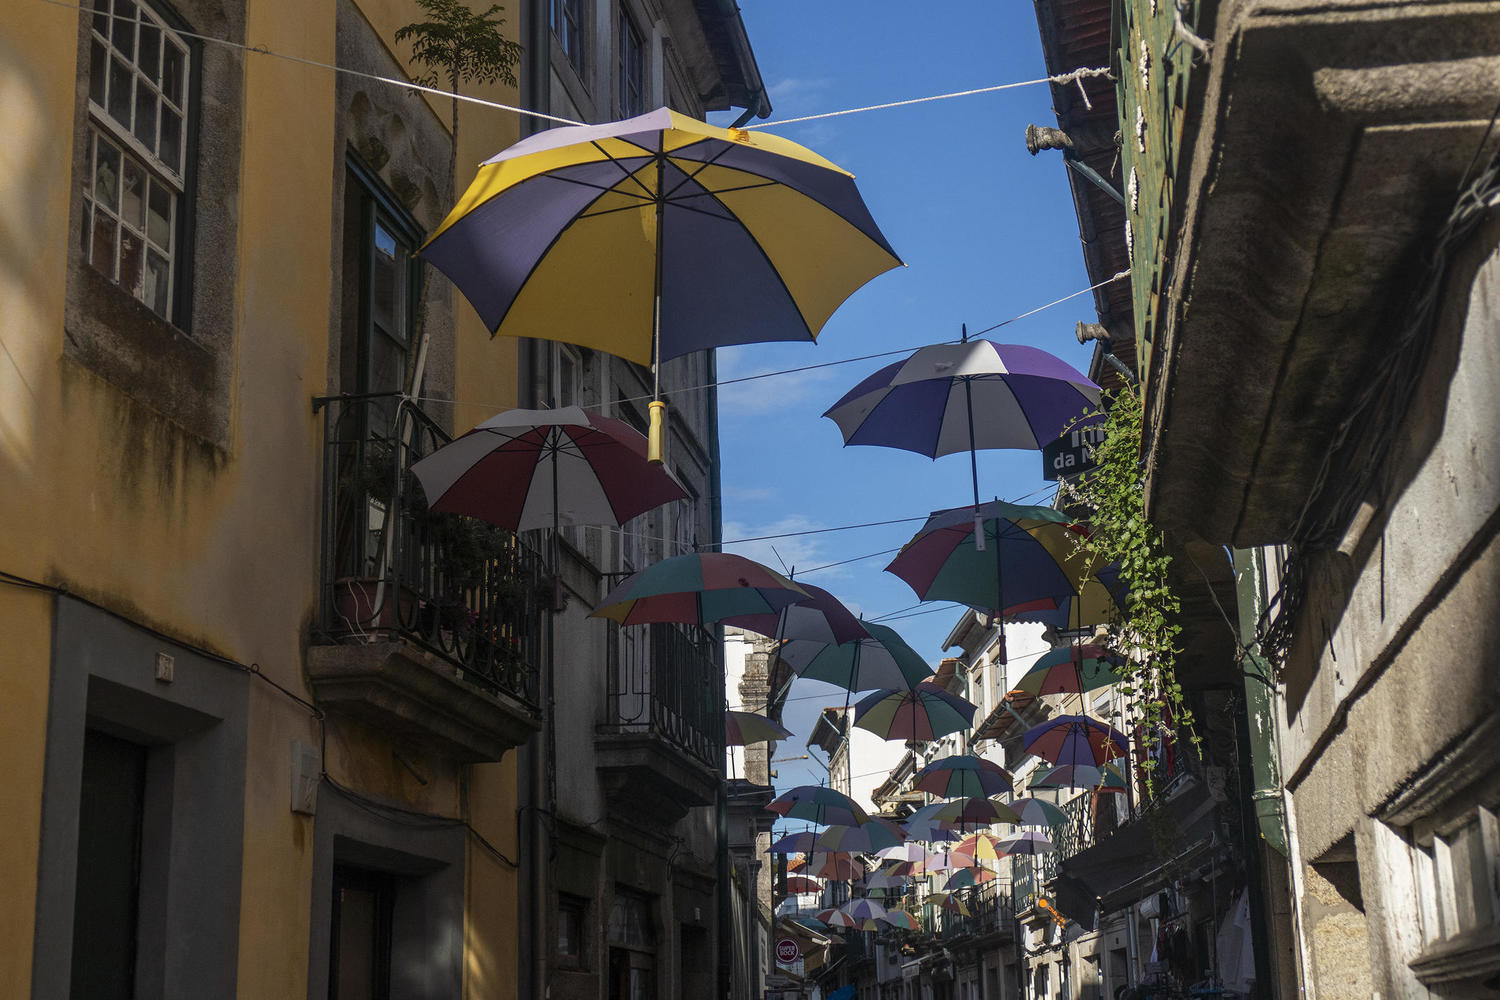 Decorated streets of Viana do Castelo